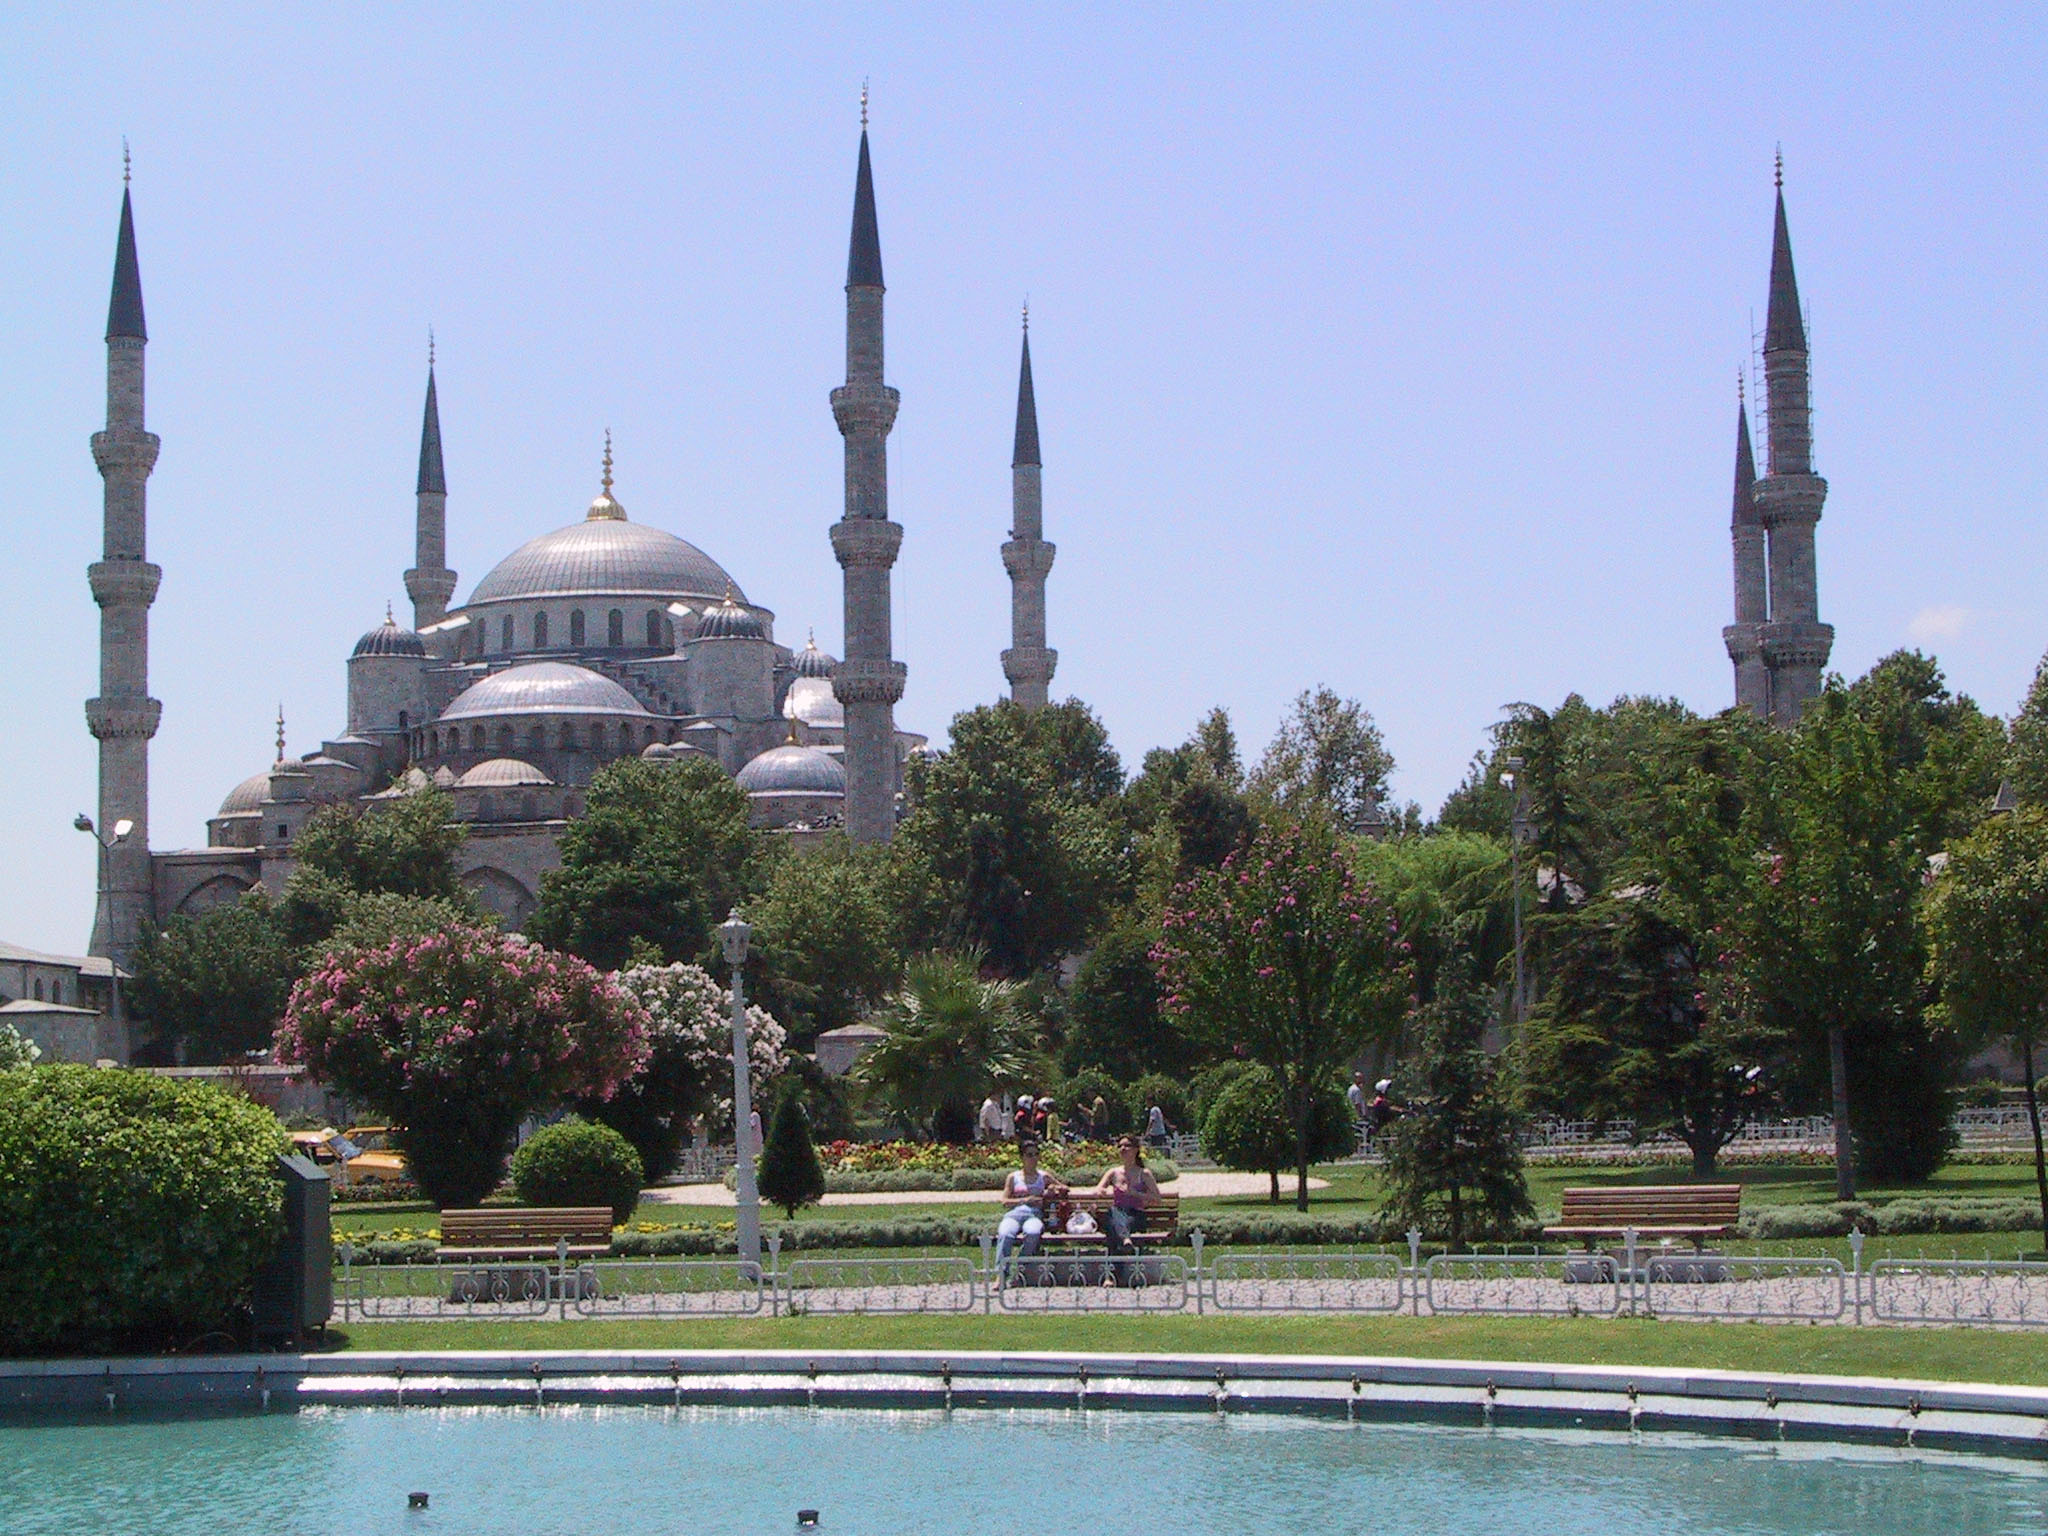 391801 08: The Blue Mosque, famed for its blue tiled interior, rises above Sultanahmet Park July 12, 2001 in the Old City of Istanbul, Turkey. Istanbul, which is bidding to host the 2008 Olympic games, is awaiting the decision of the International Olympic